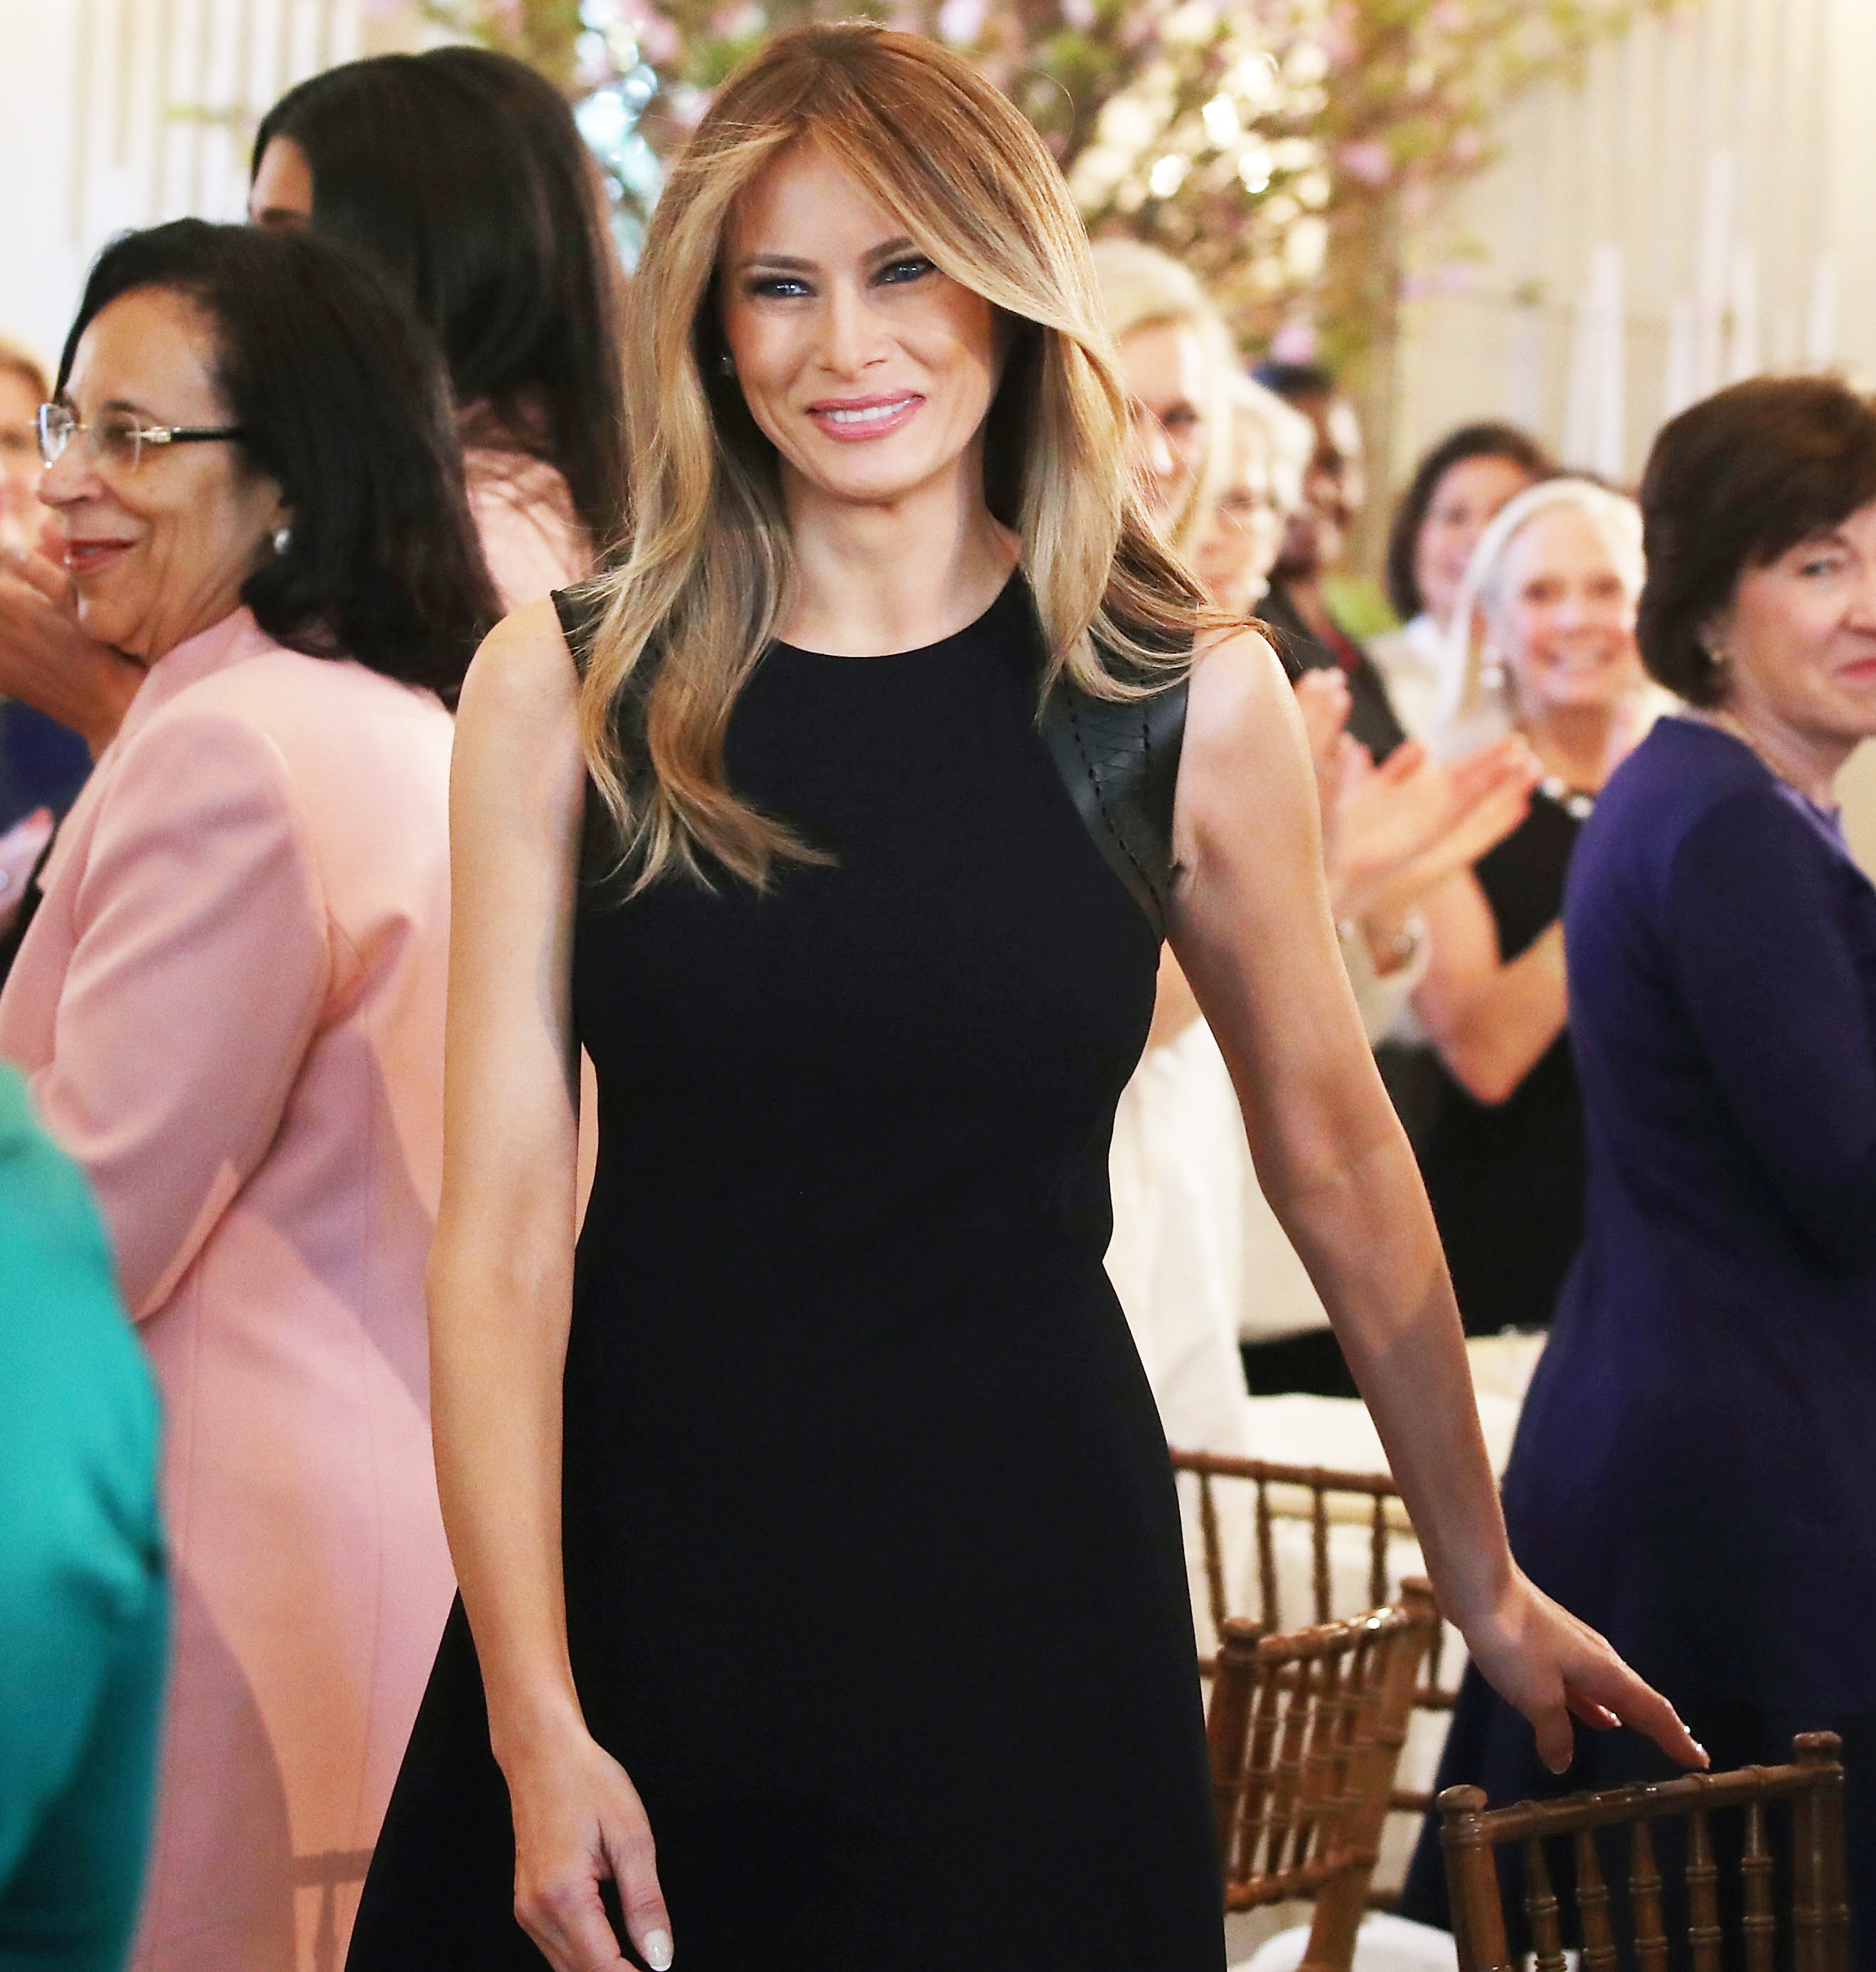 White Trash In The White House Talks Education: Melania Trump Talks 'Kindness' At International Women's